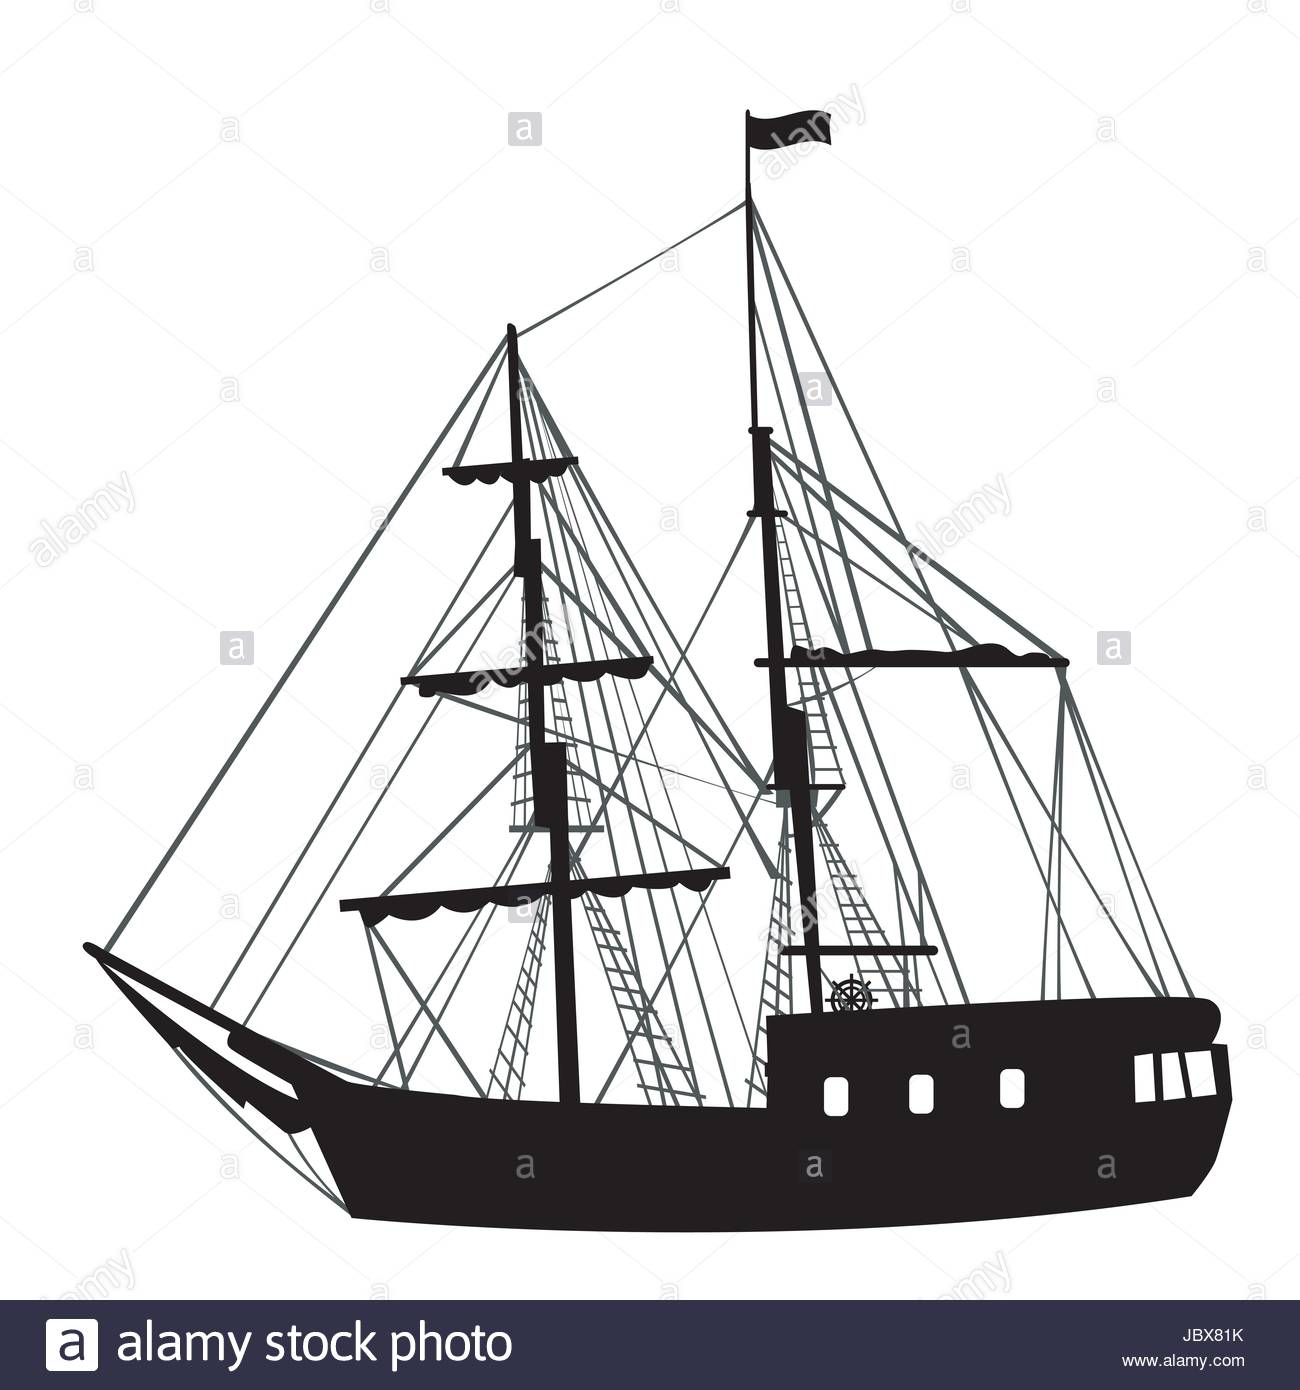 Silhouette of a black sailing ship on white background - Stock Vector